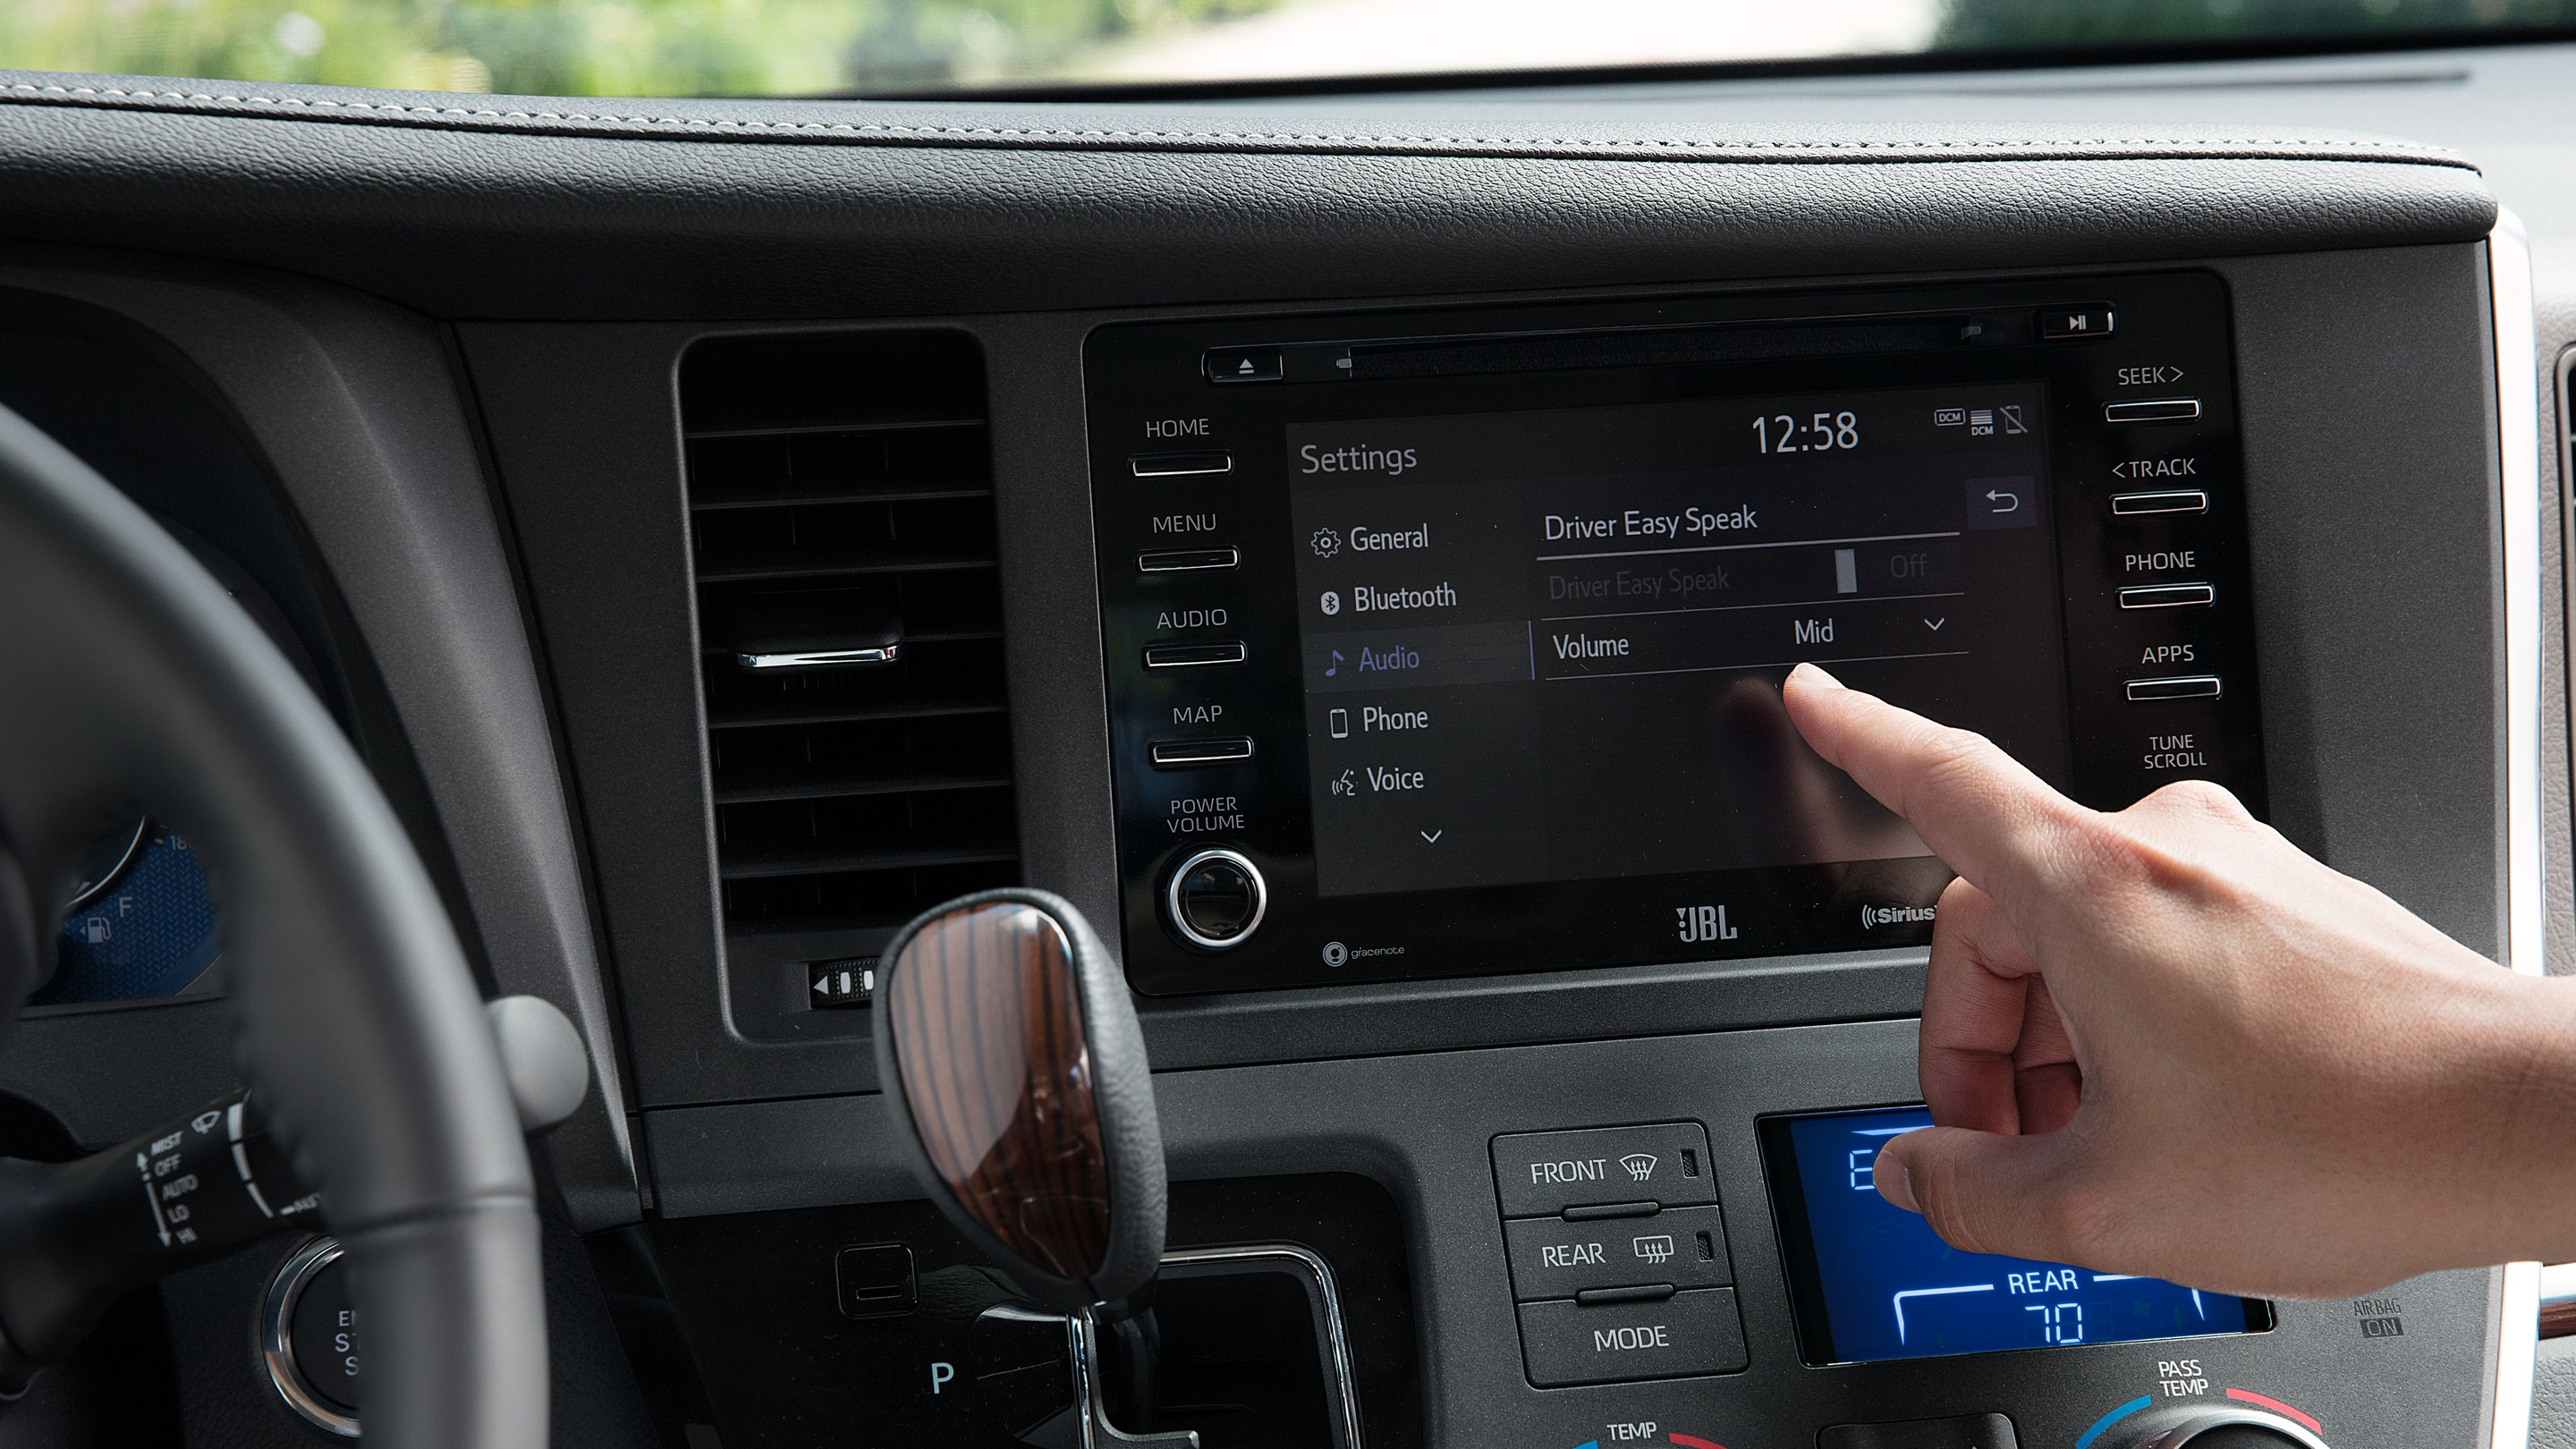 Driver Easy Speak in the 2020 Sienna